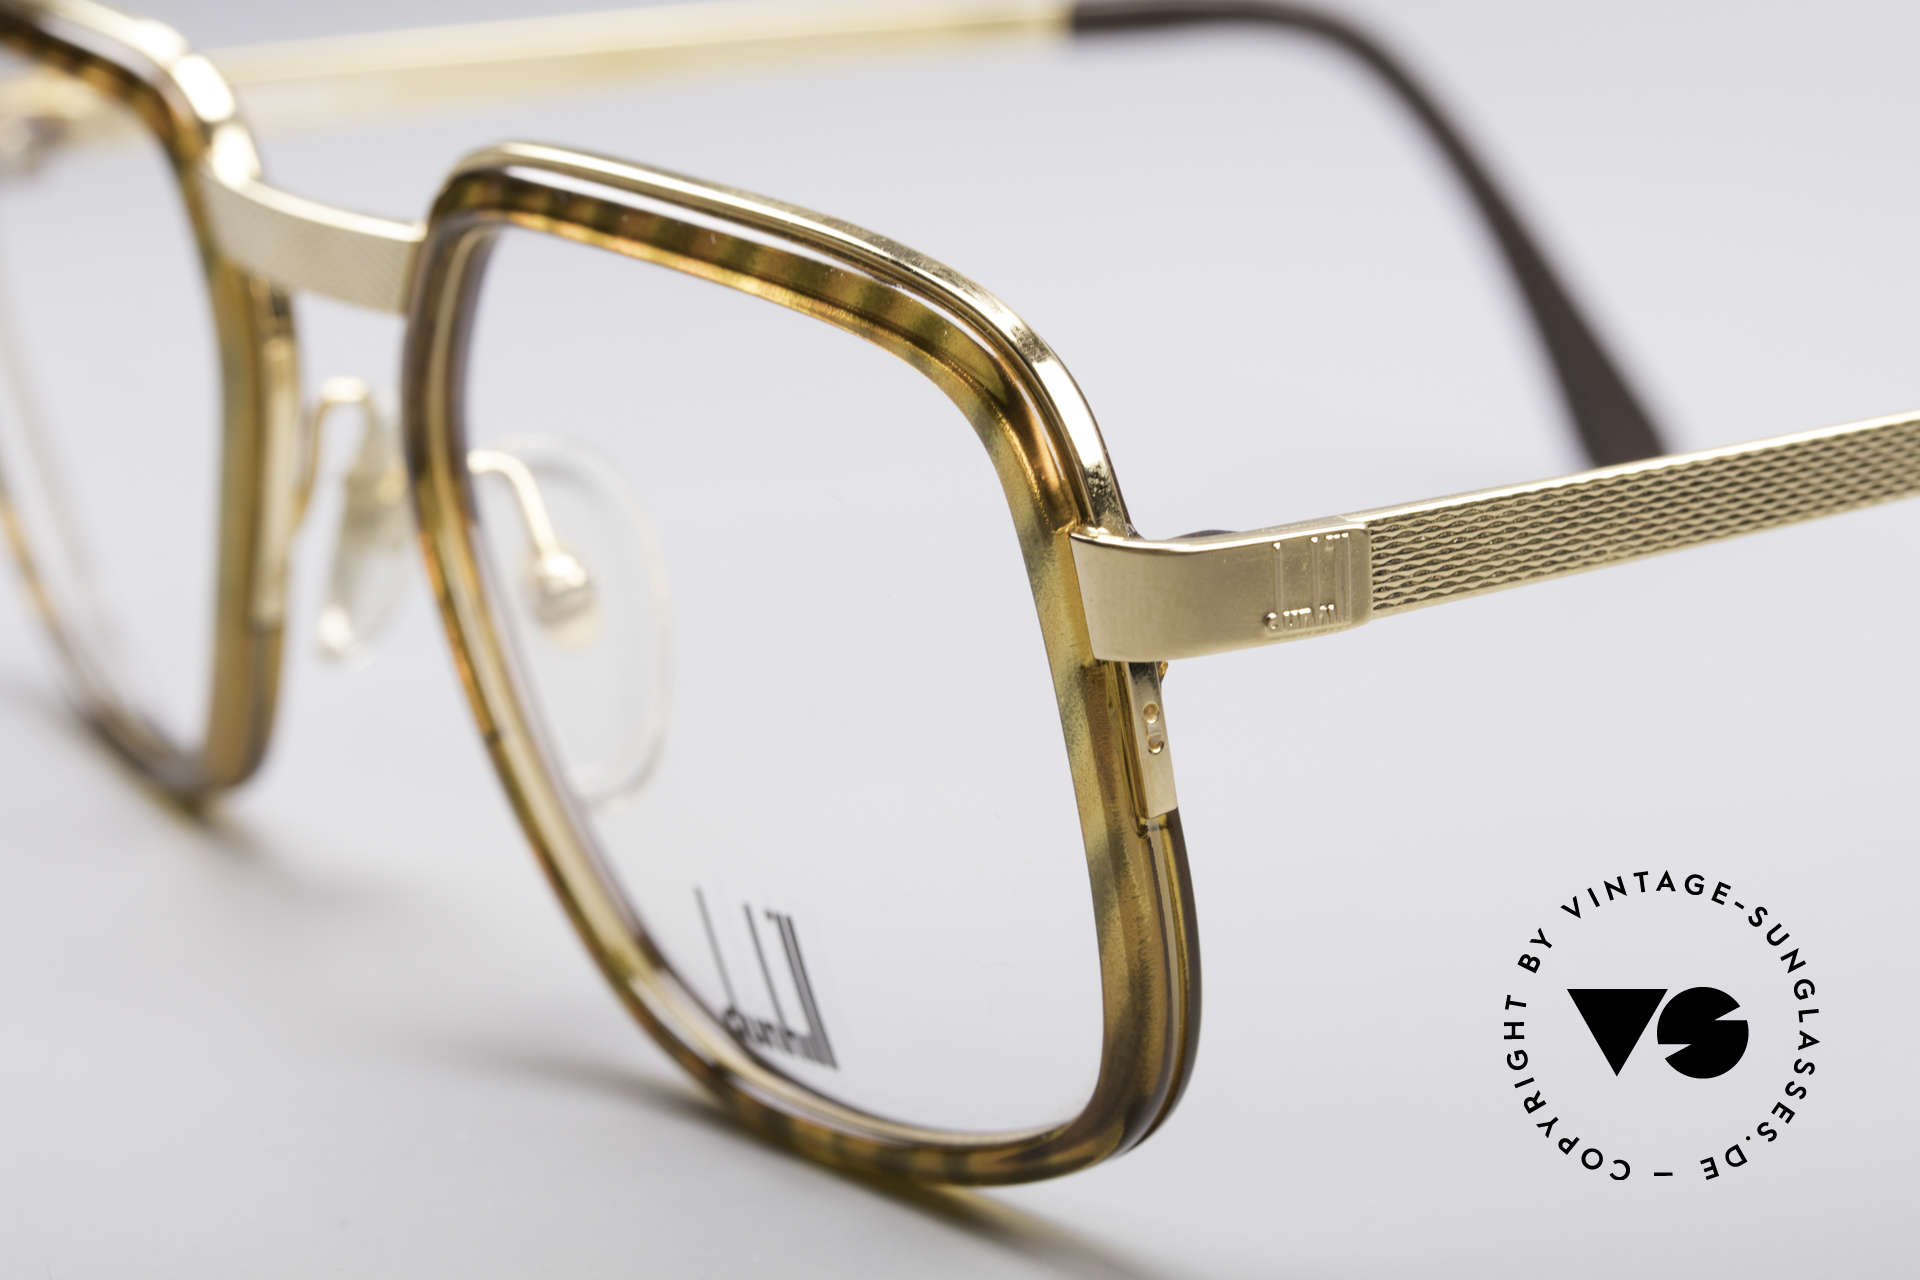 Dunhill 6073 Gold Plated 80's Glasses Men, 'made in Germany' quality with British flair & elegance, Made for Men